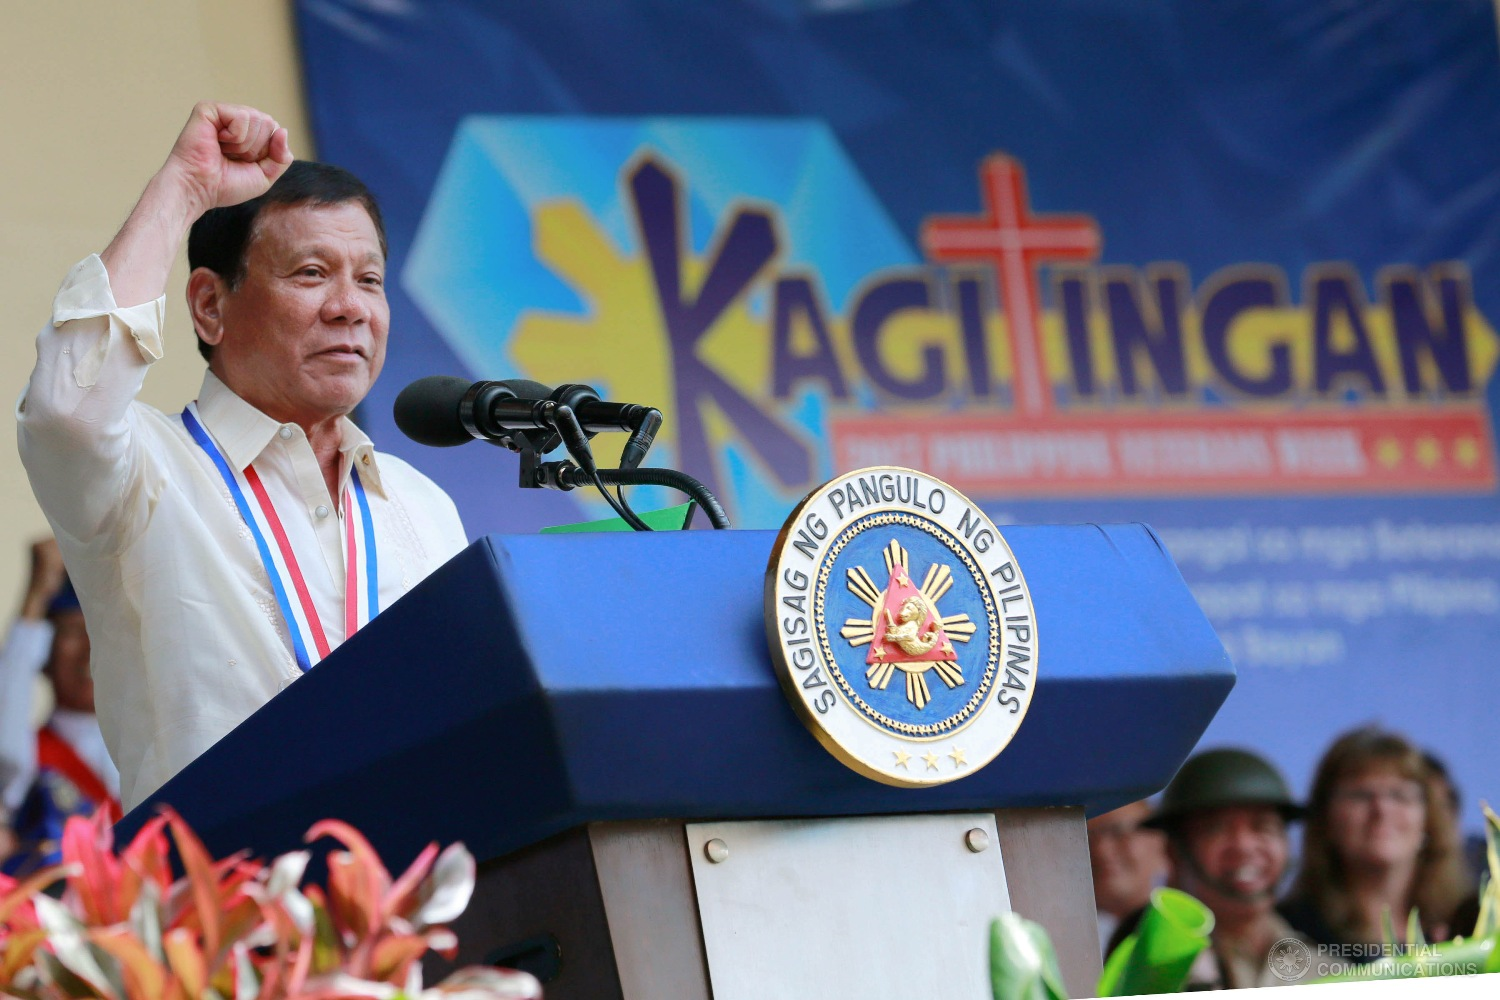 Malacañang on Tuesday said the latest Pulse Asia survey showing President Rodrigo Duterte garnering the highest approval and trust rating among the country's top officials has validated the people's deep appreciation towards the President's policies on drugs, criminality and corruption. (Photo: REY BANIQUET/Presidential Photo)